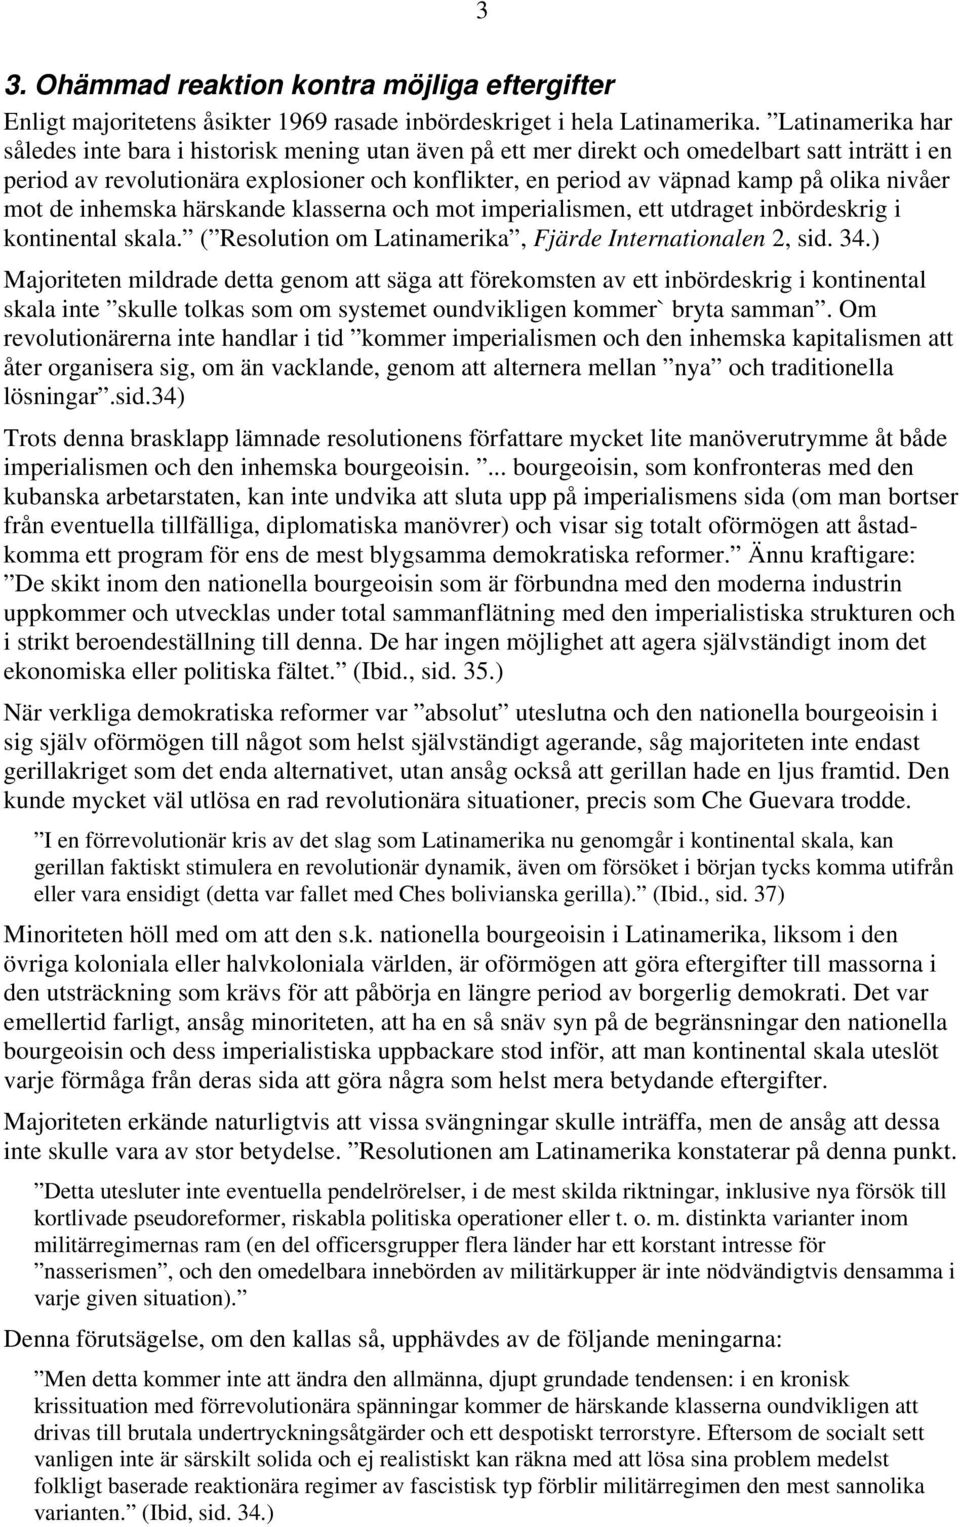 olika nivåer mot de inhemska härskande klasserna och mot imperialismen, ett utdraget inbördeskrig i kontinental skala. ( Resolution om Latinamerika, Fjärde Internationalen 2, sid. 34.